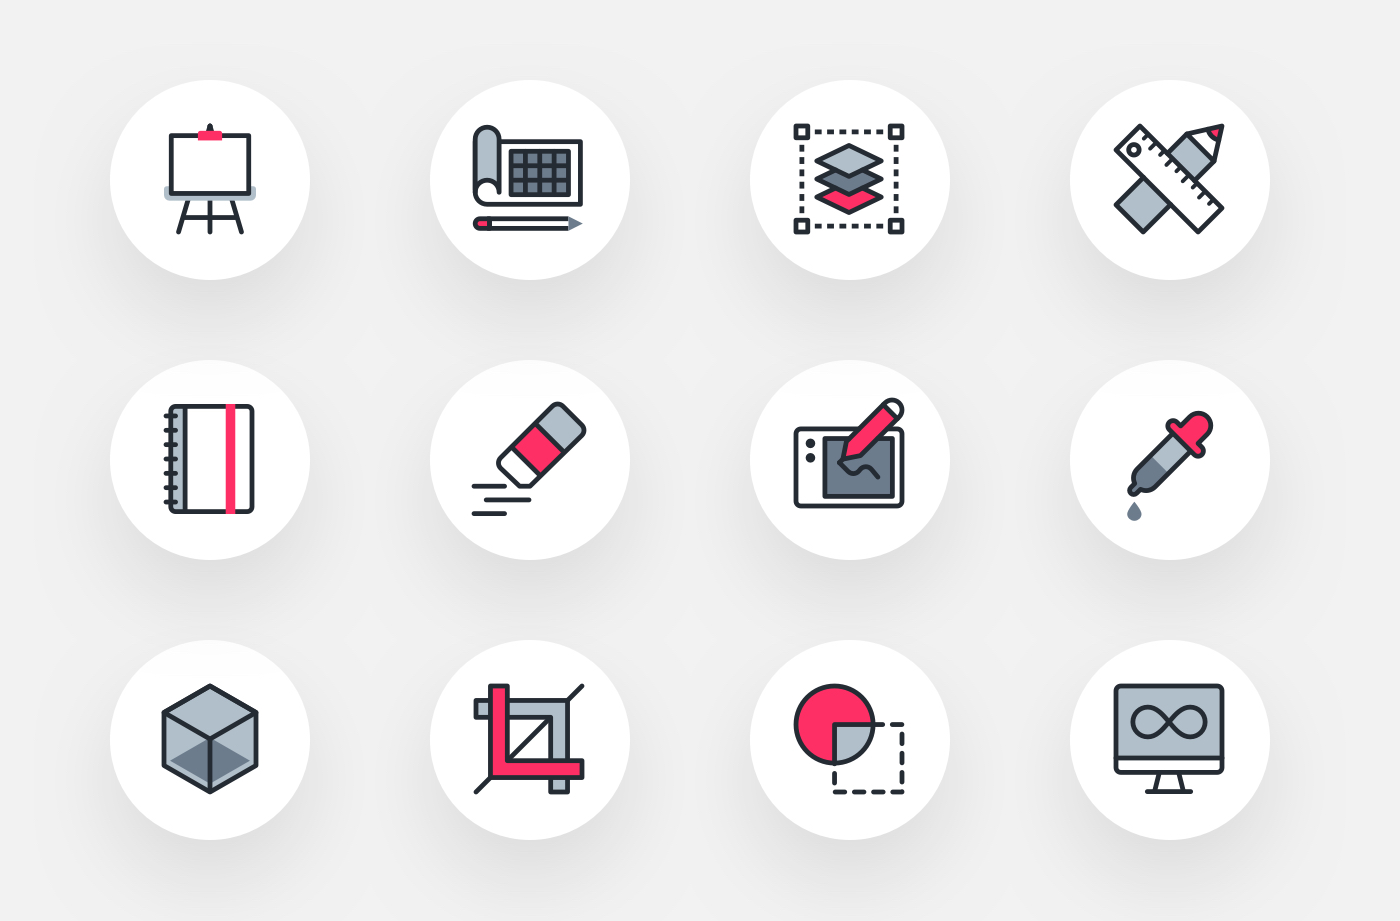 Design Tools Free Icon Pack - Grab this free icon pack with 20 graphic design & freelance-related icons. Comes in four colors—black, white, gray, and hot pink.